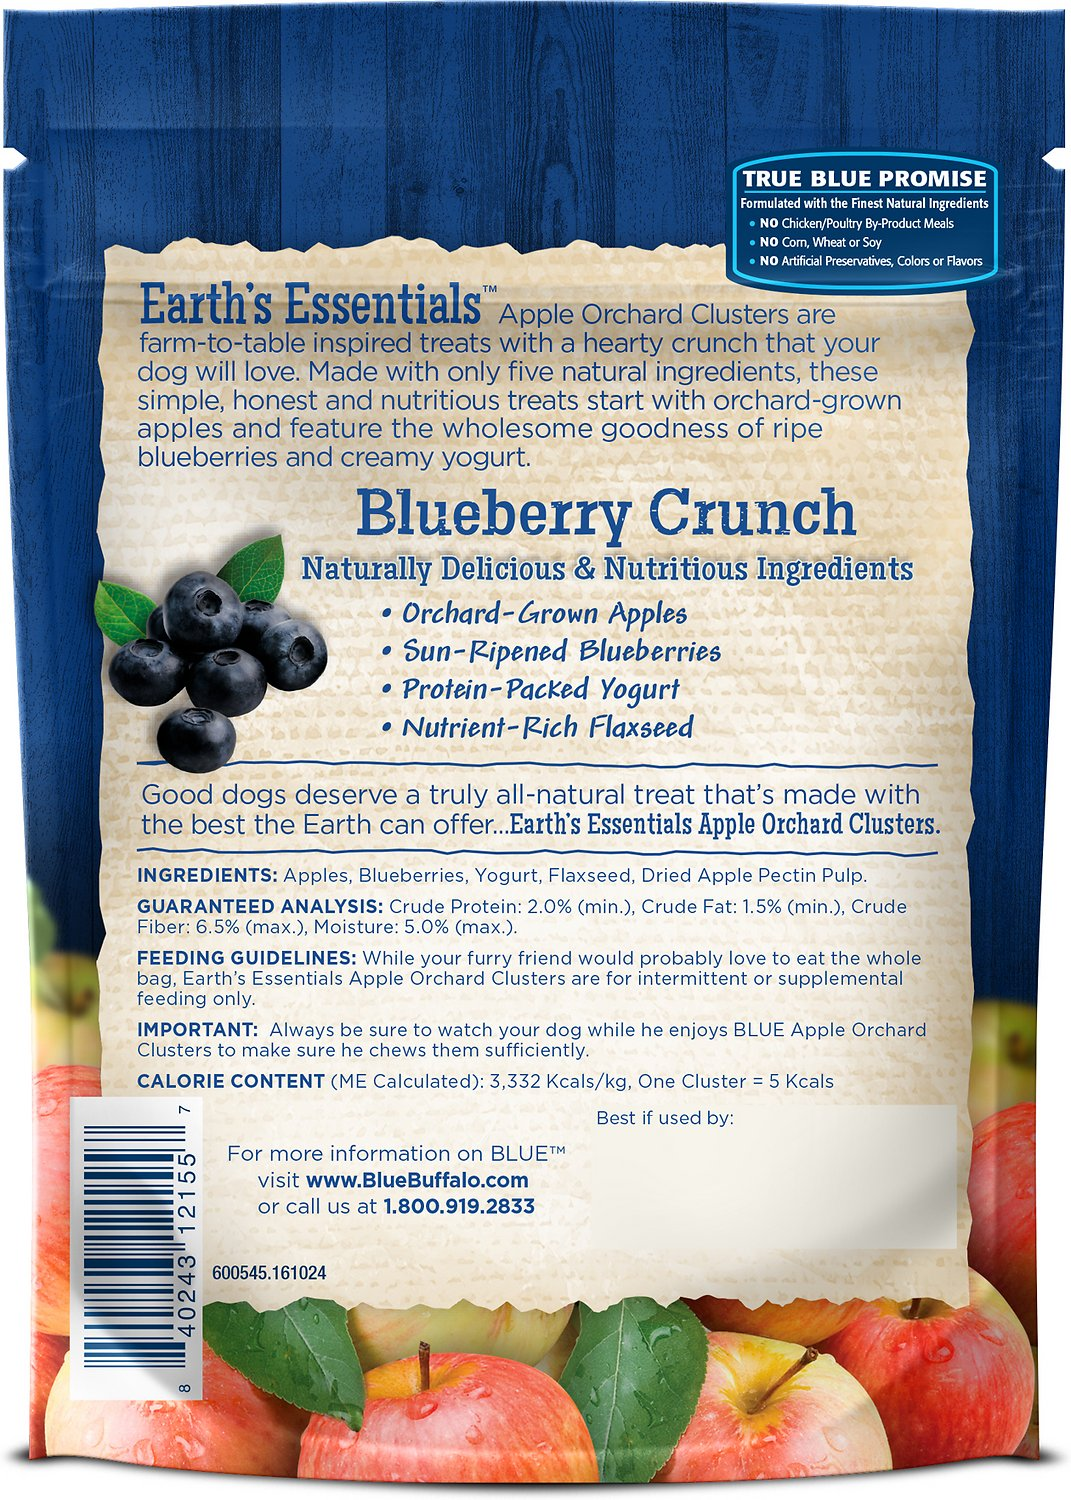 Blue Buffalo Canned Dog Food Nutrition Facts